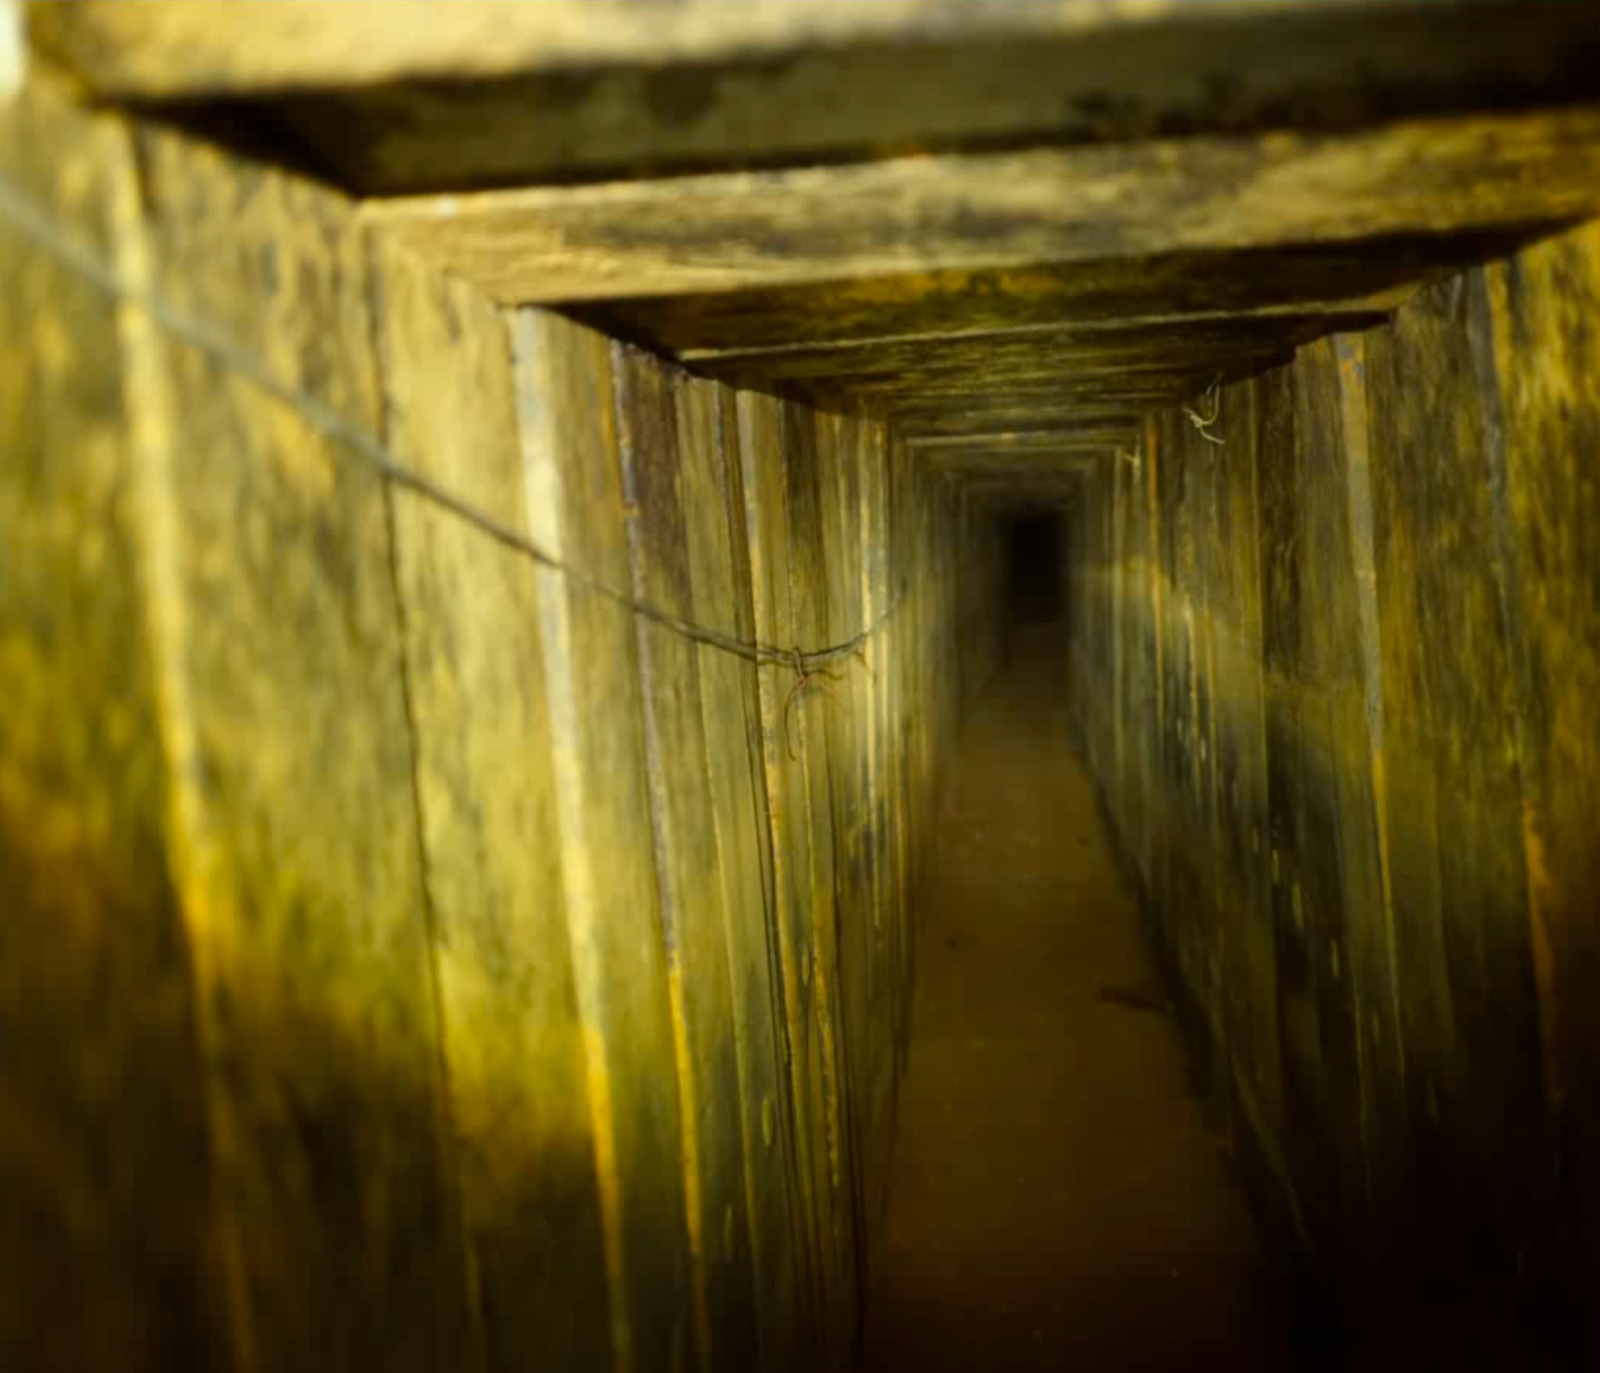 The interior of a Hamas attack tunnel that penetrated Israeli territory and was destroyed by the Israeli military